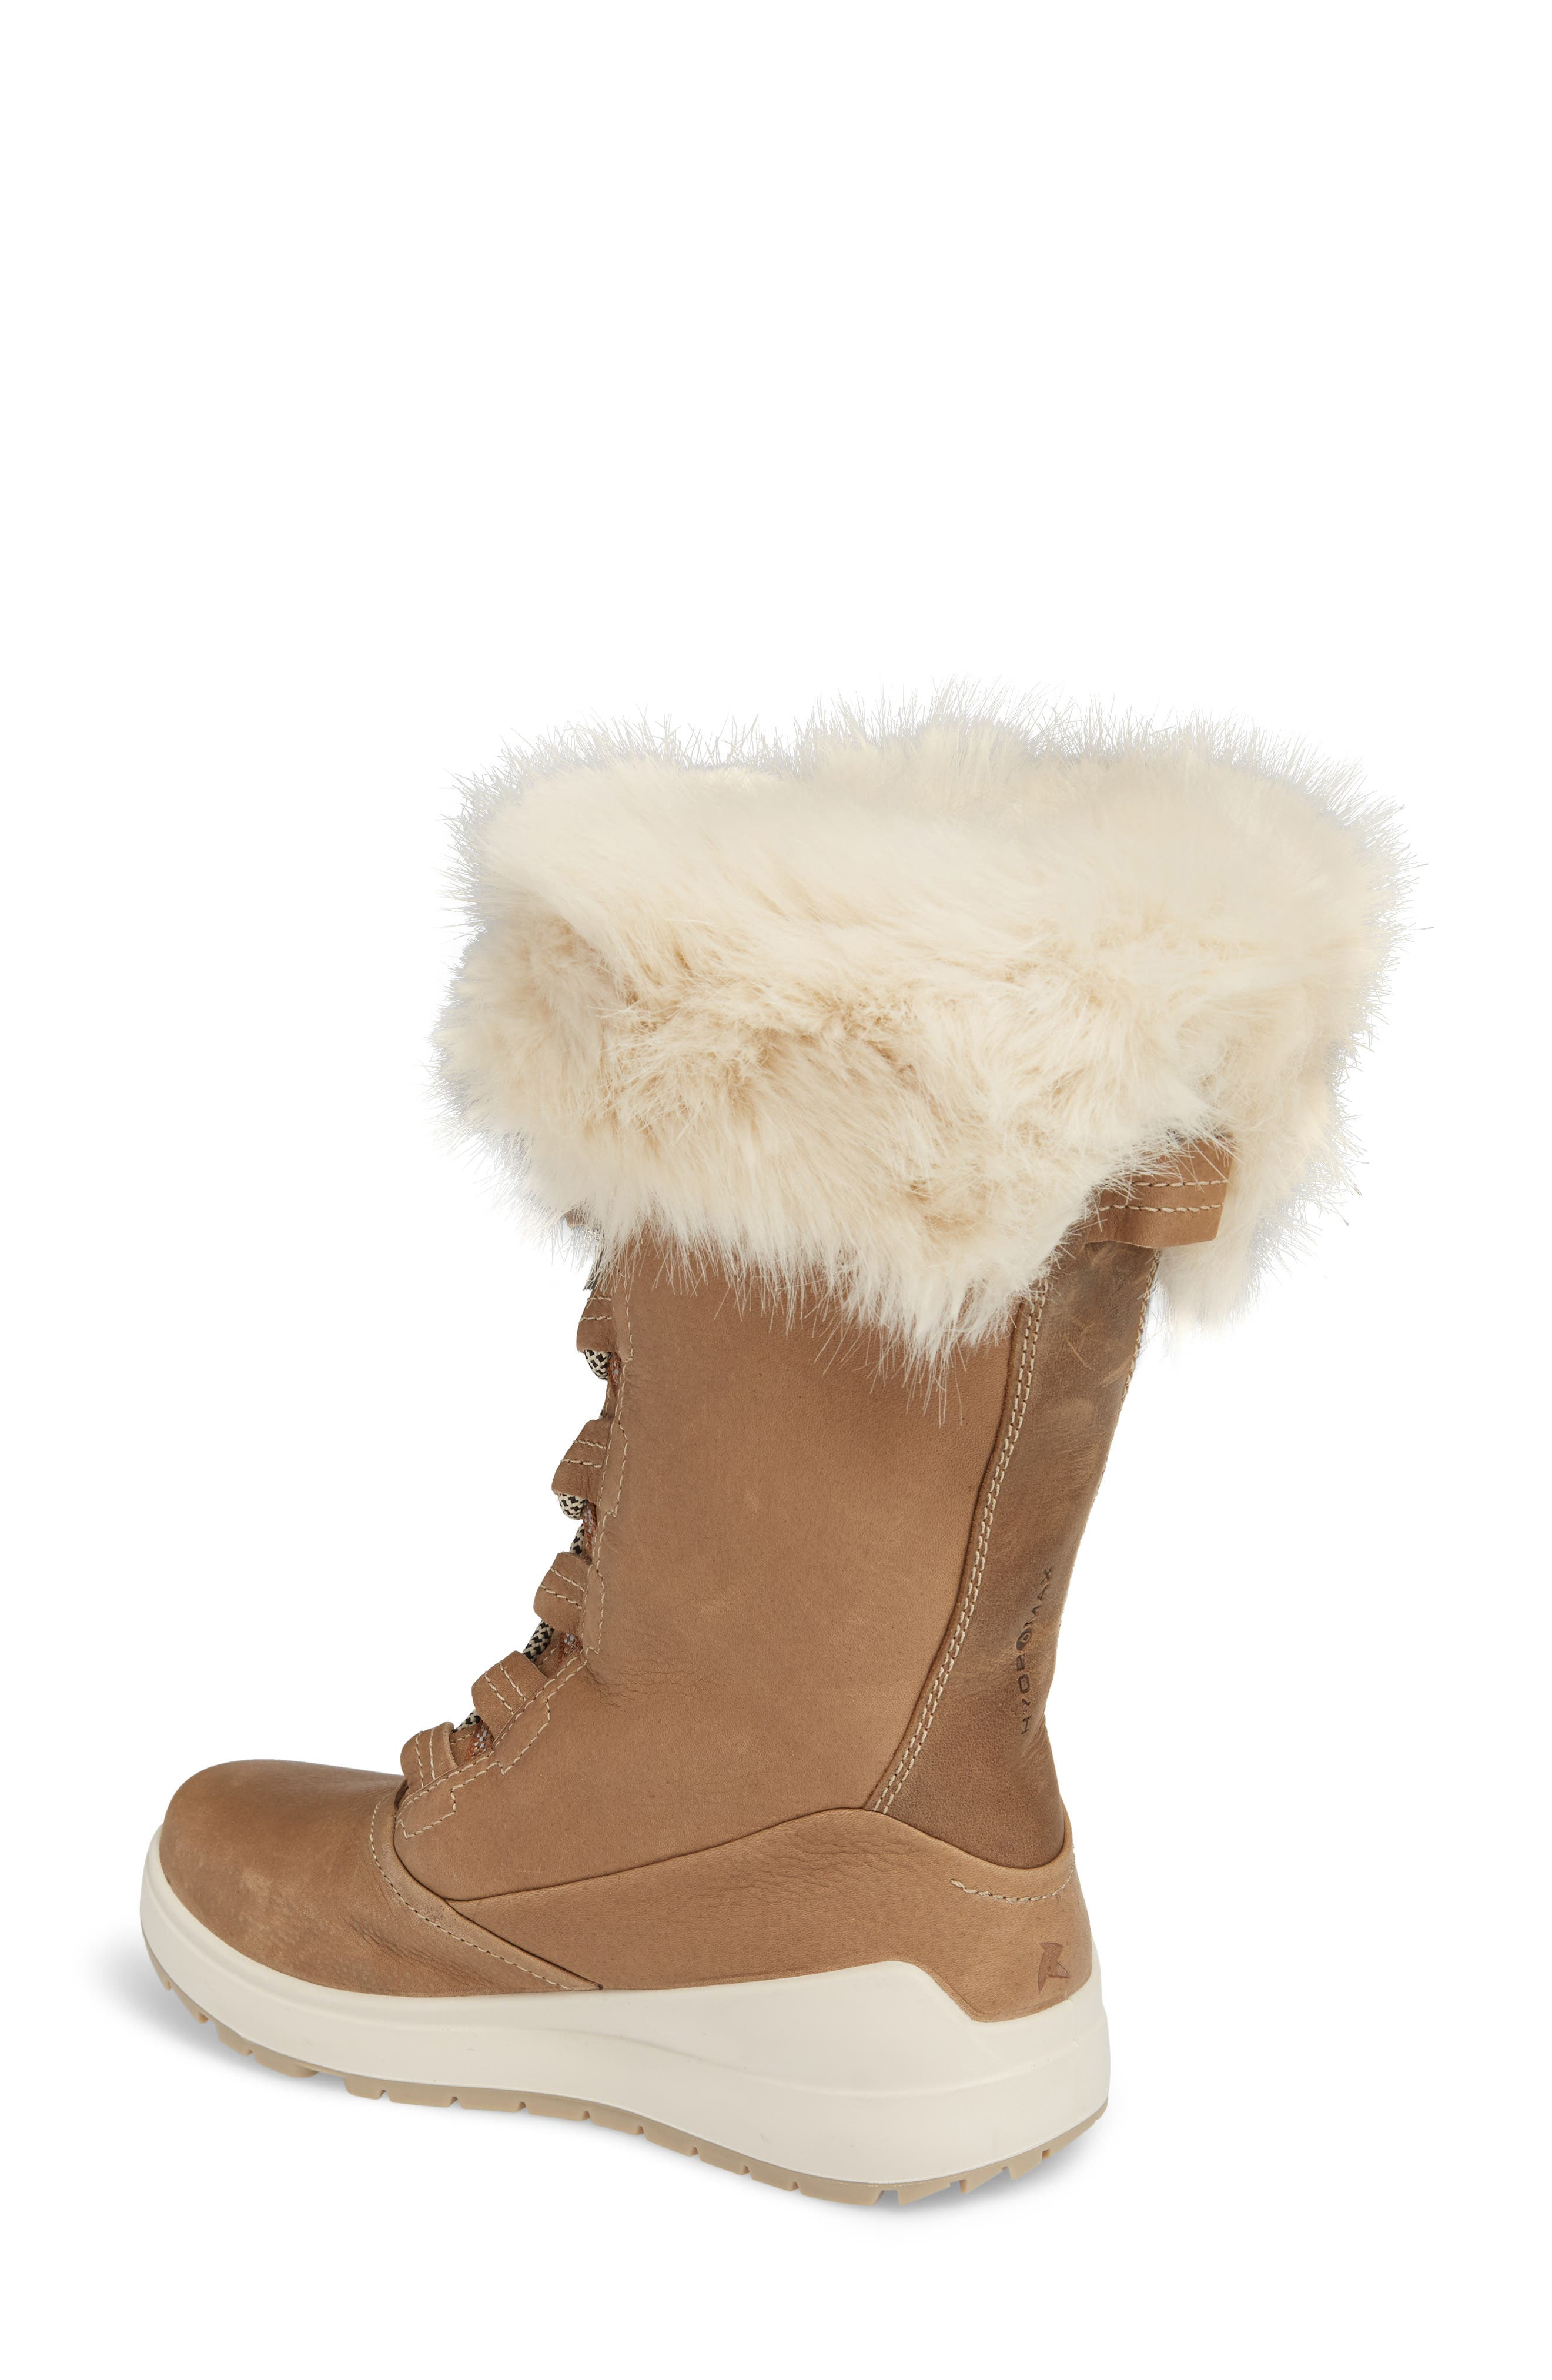 Noyce Siberia Hydromax Water Resistant Winter Boot with Faux Fur Trim,                             Alternate thumbnail 4, color,